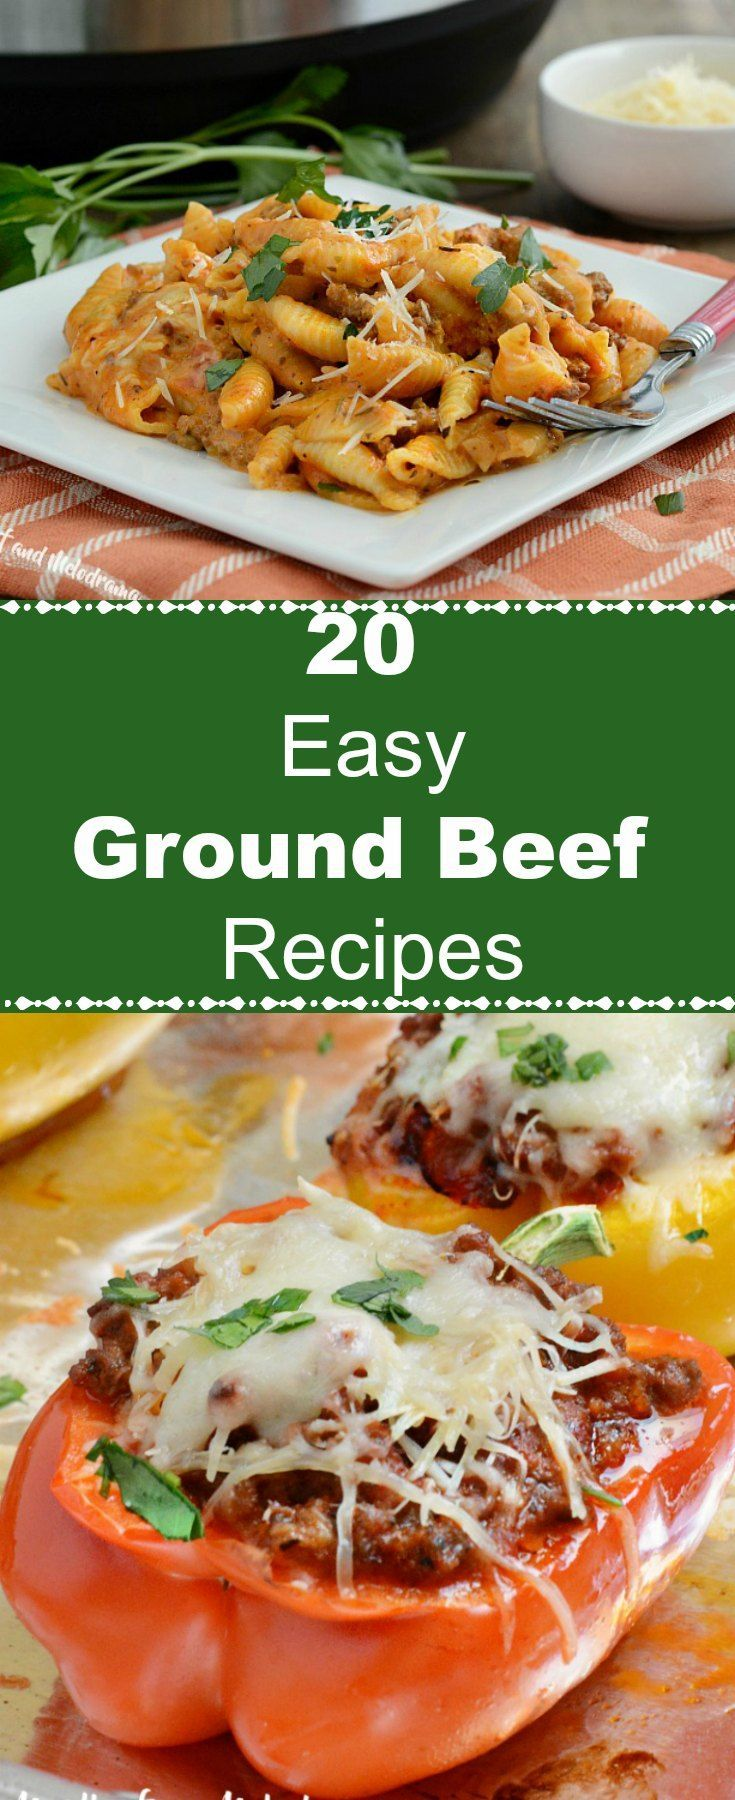 20 Easy Ground Beef Recipes Ground Beef Recipes Easy Beef Recipes For Dinner Beef Recipes Easy